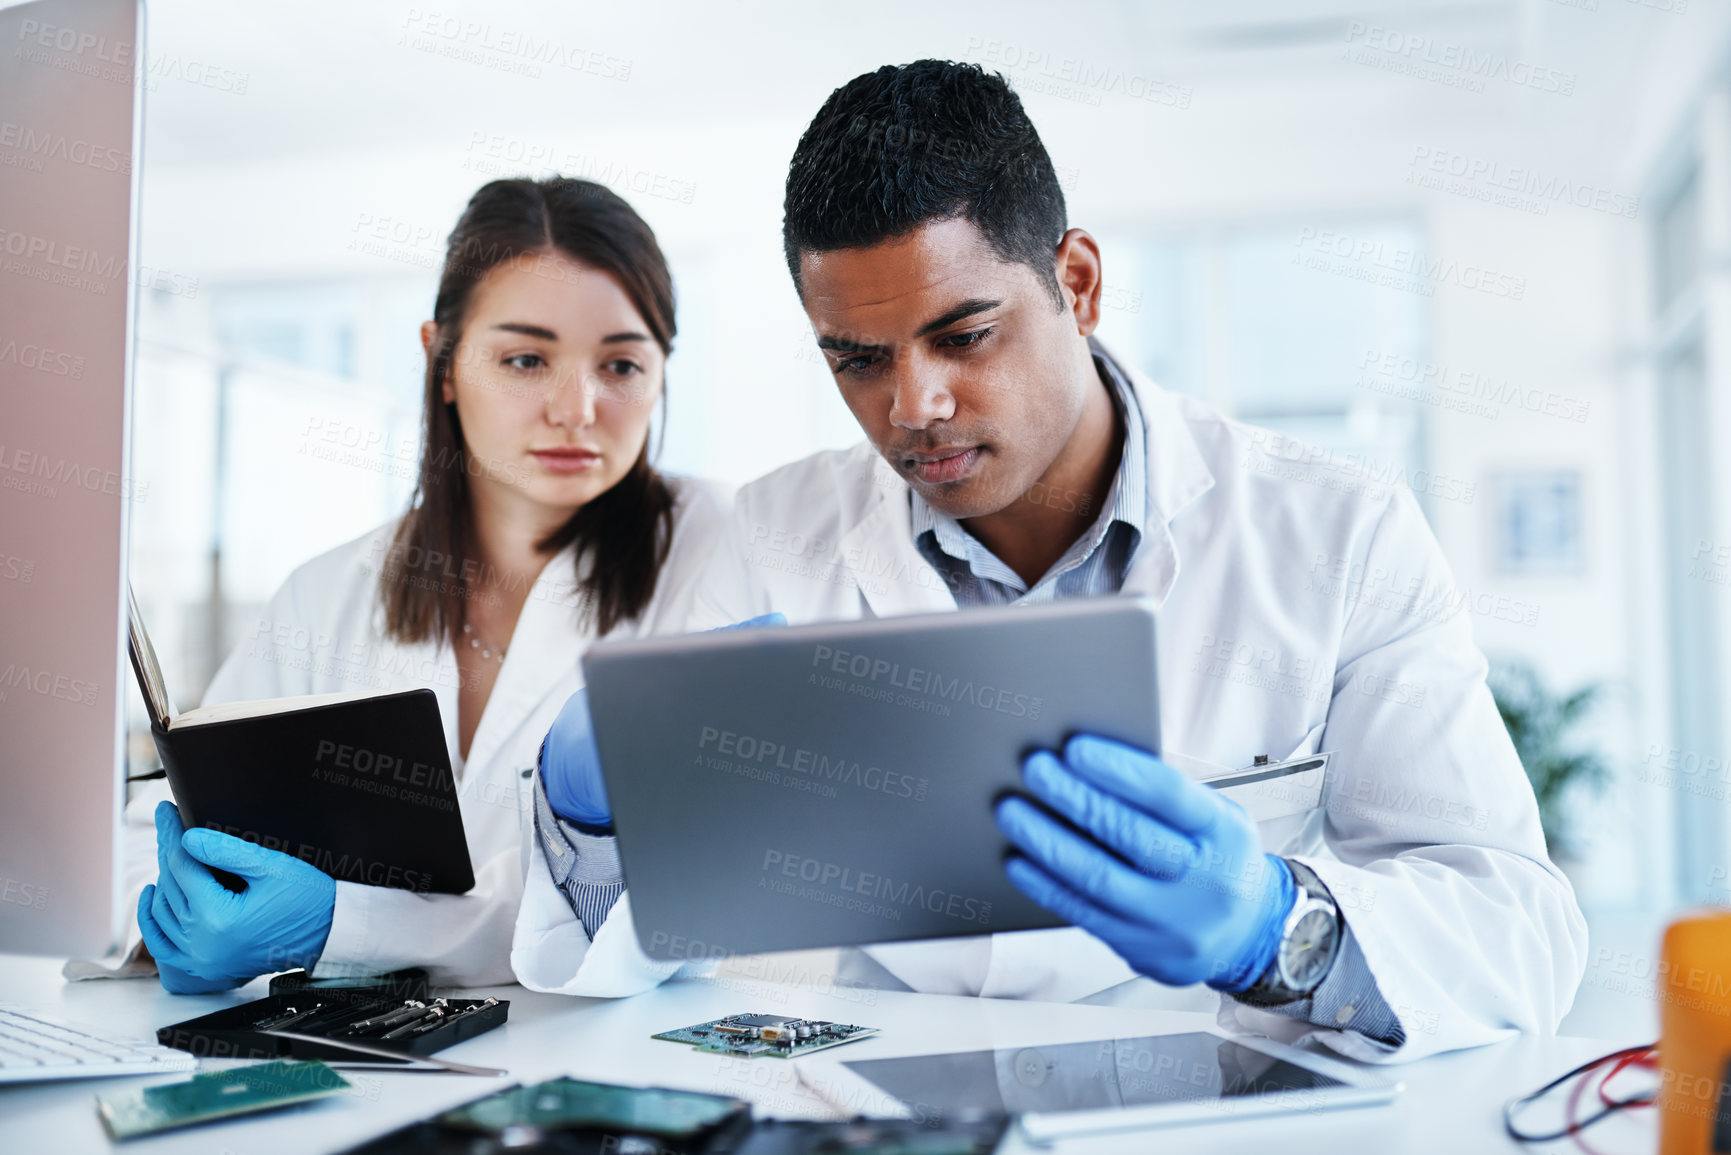 Buy stock photo Shot of a young man and woman using a digital tablet while repairing computer hardware in a laboratory